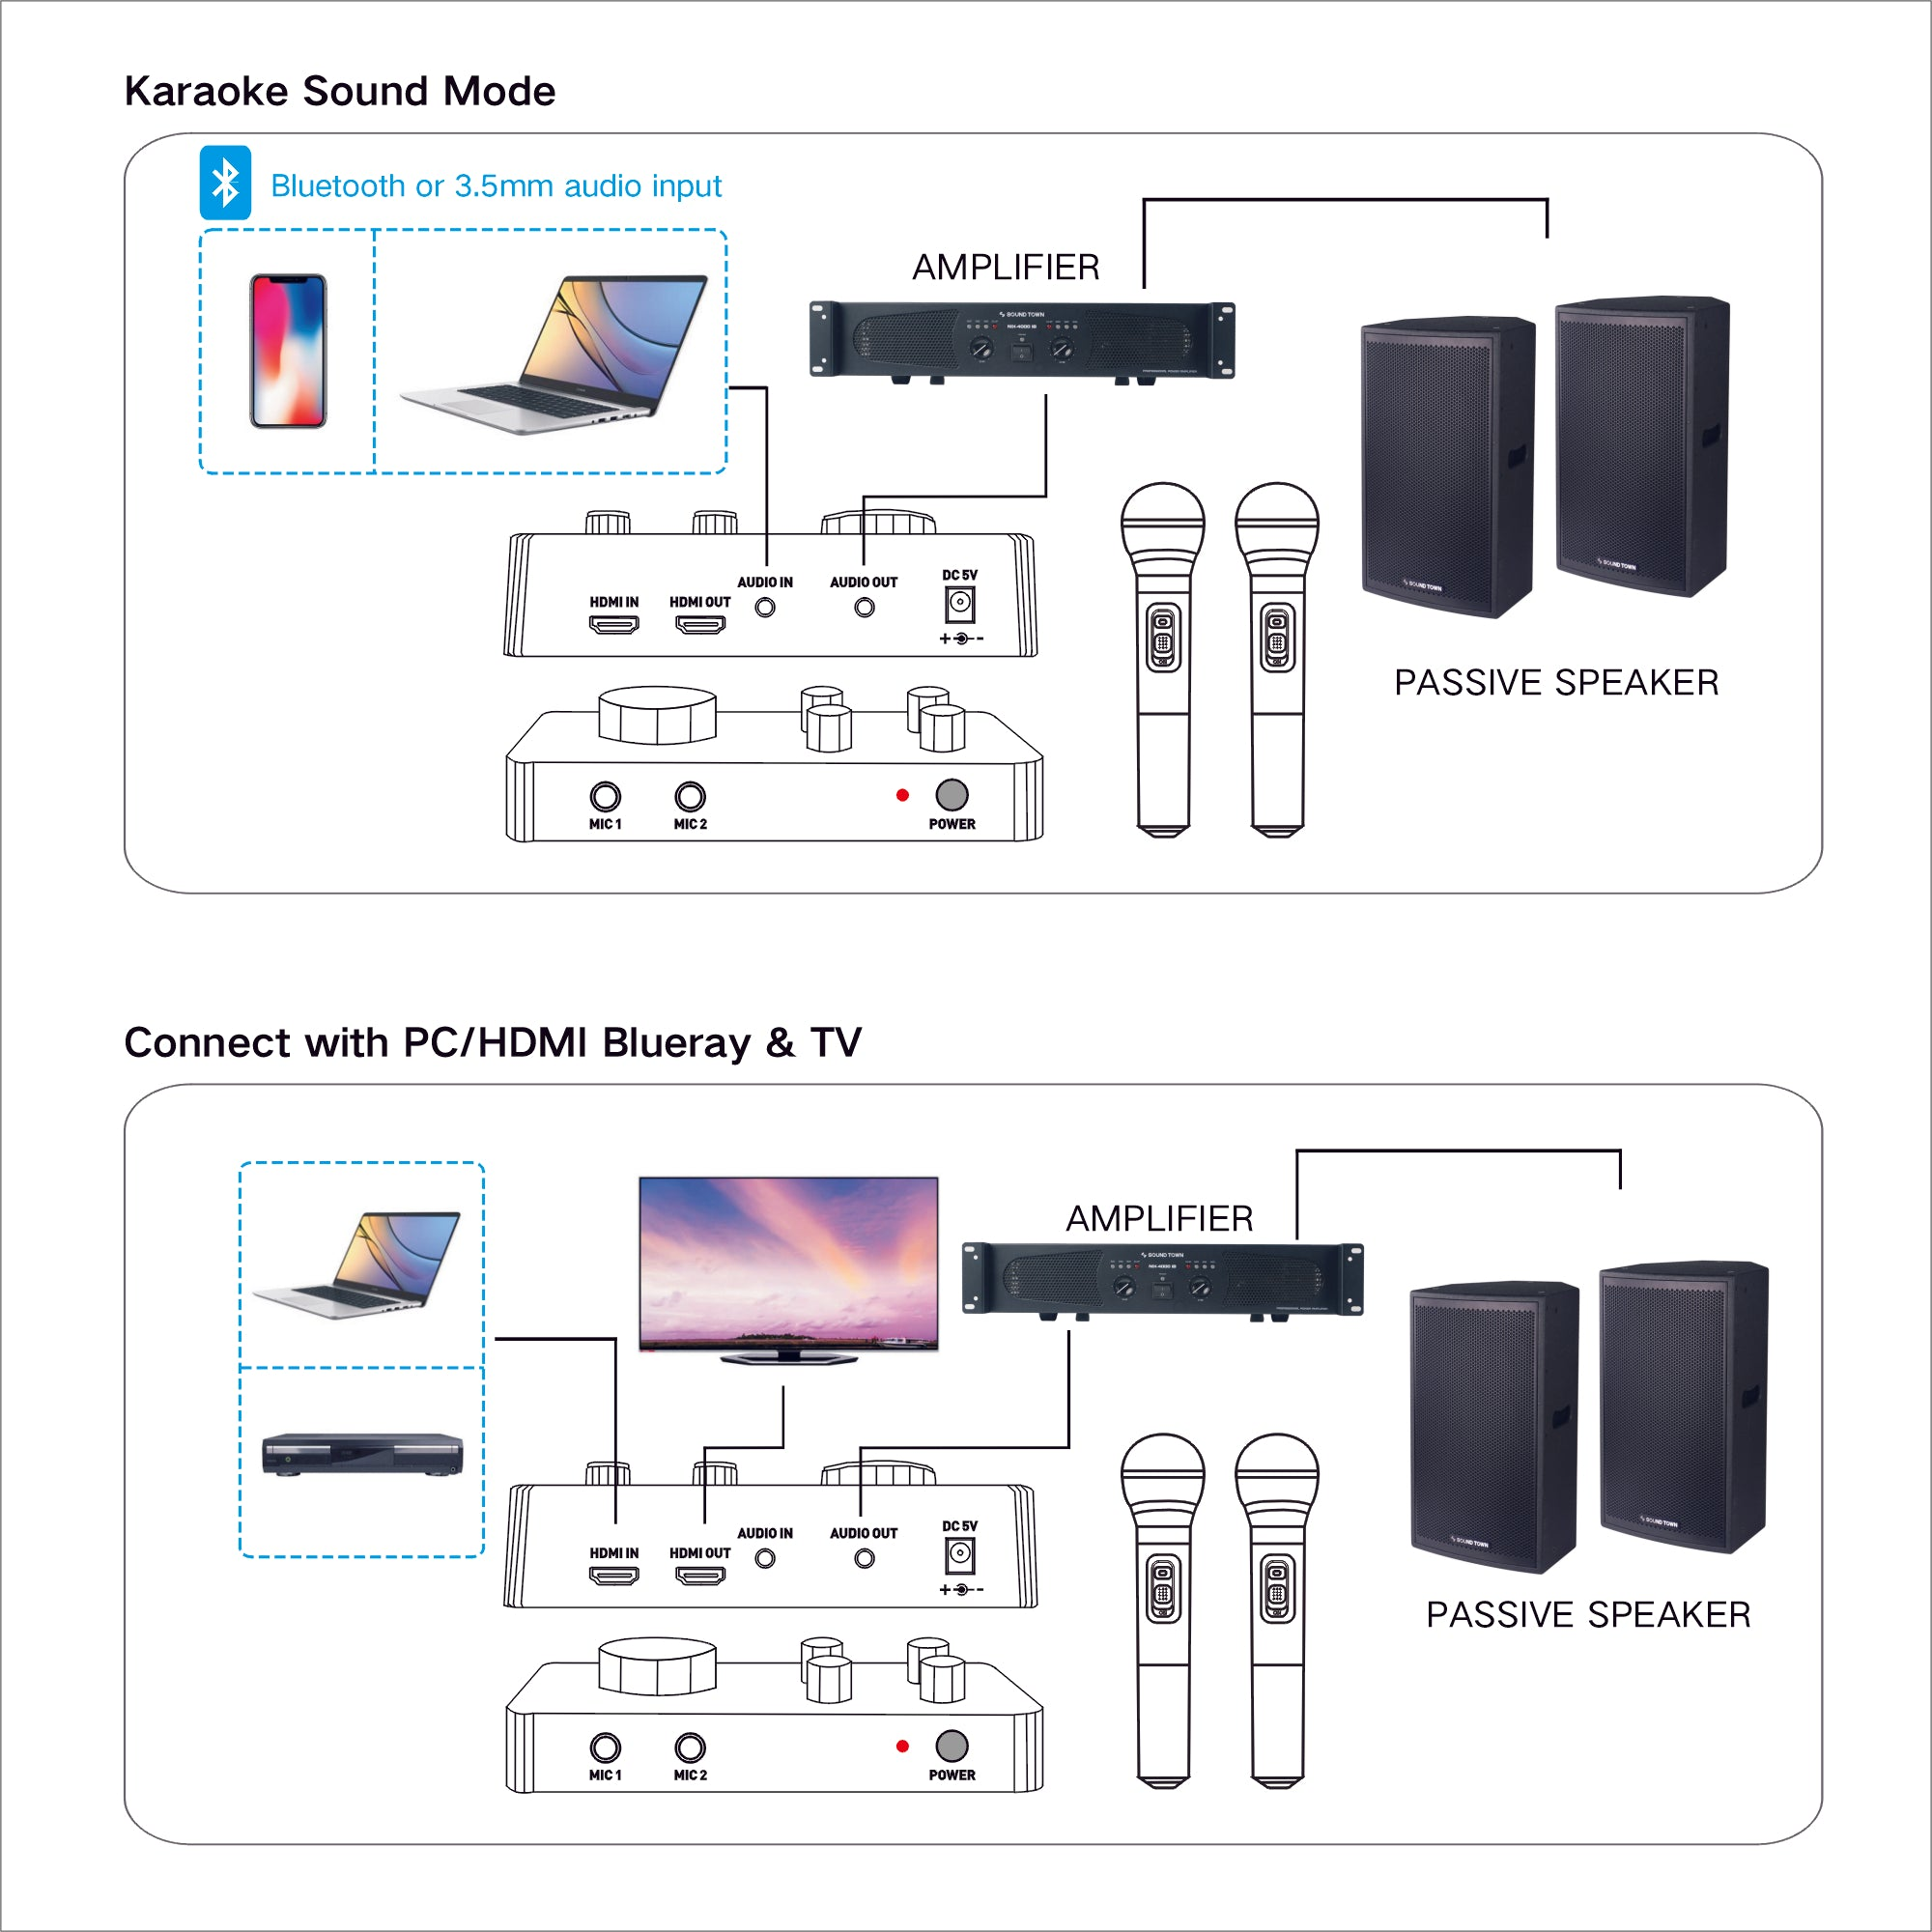 Media Box - Upgrade Version Supports Smart TV with HDMI ... on wireless access point setup diagram, wireless router setup diagram, wireless extender setup diagram,